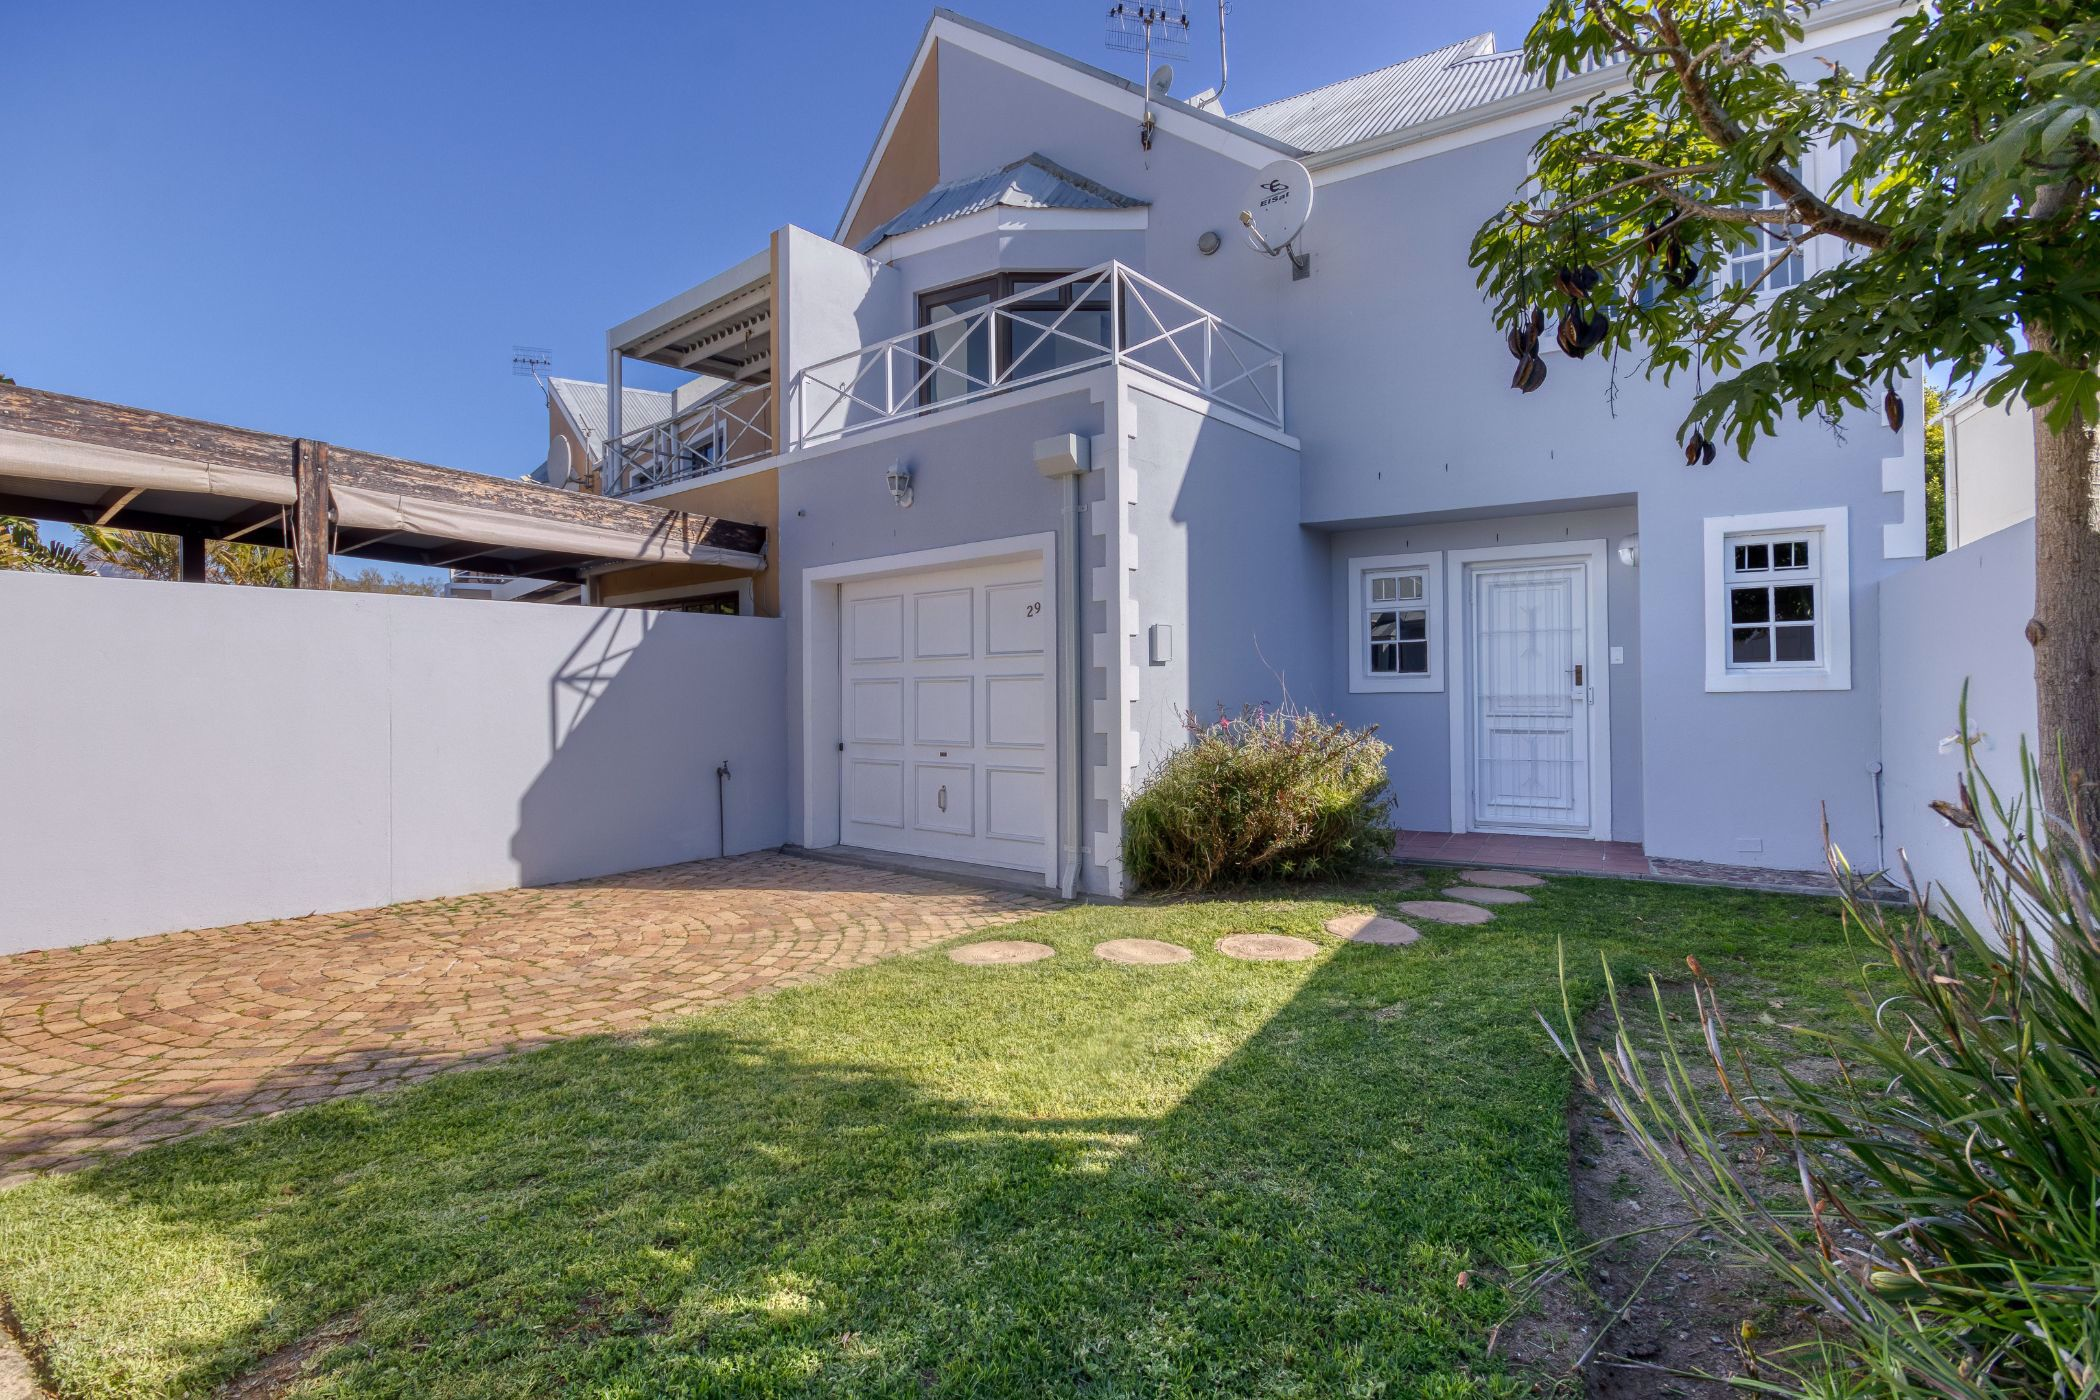 3 bedroom house for sale in Paradyskloof